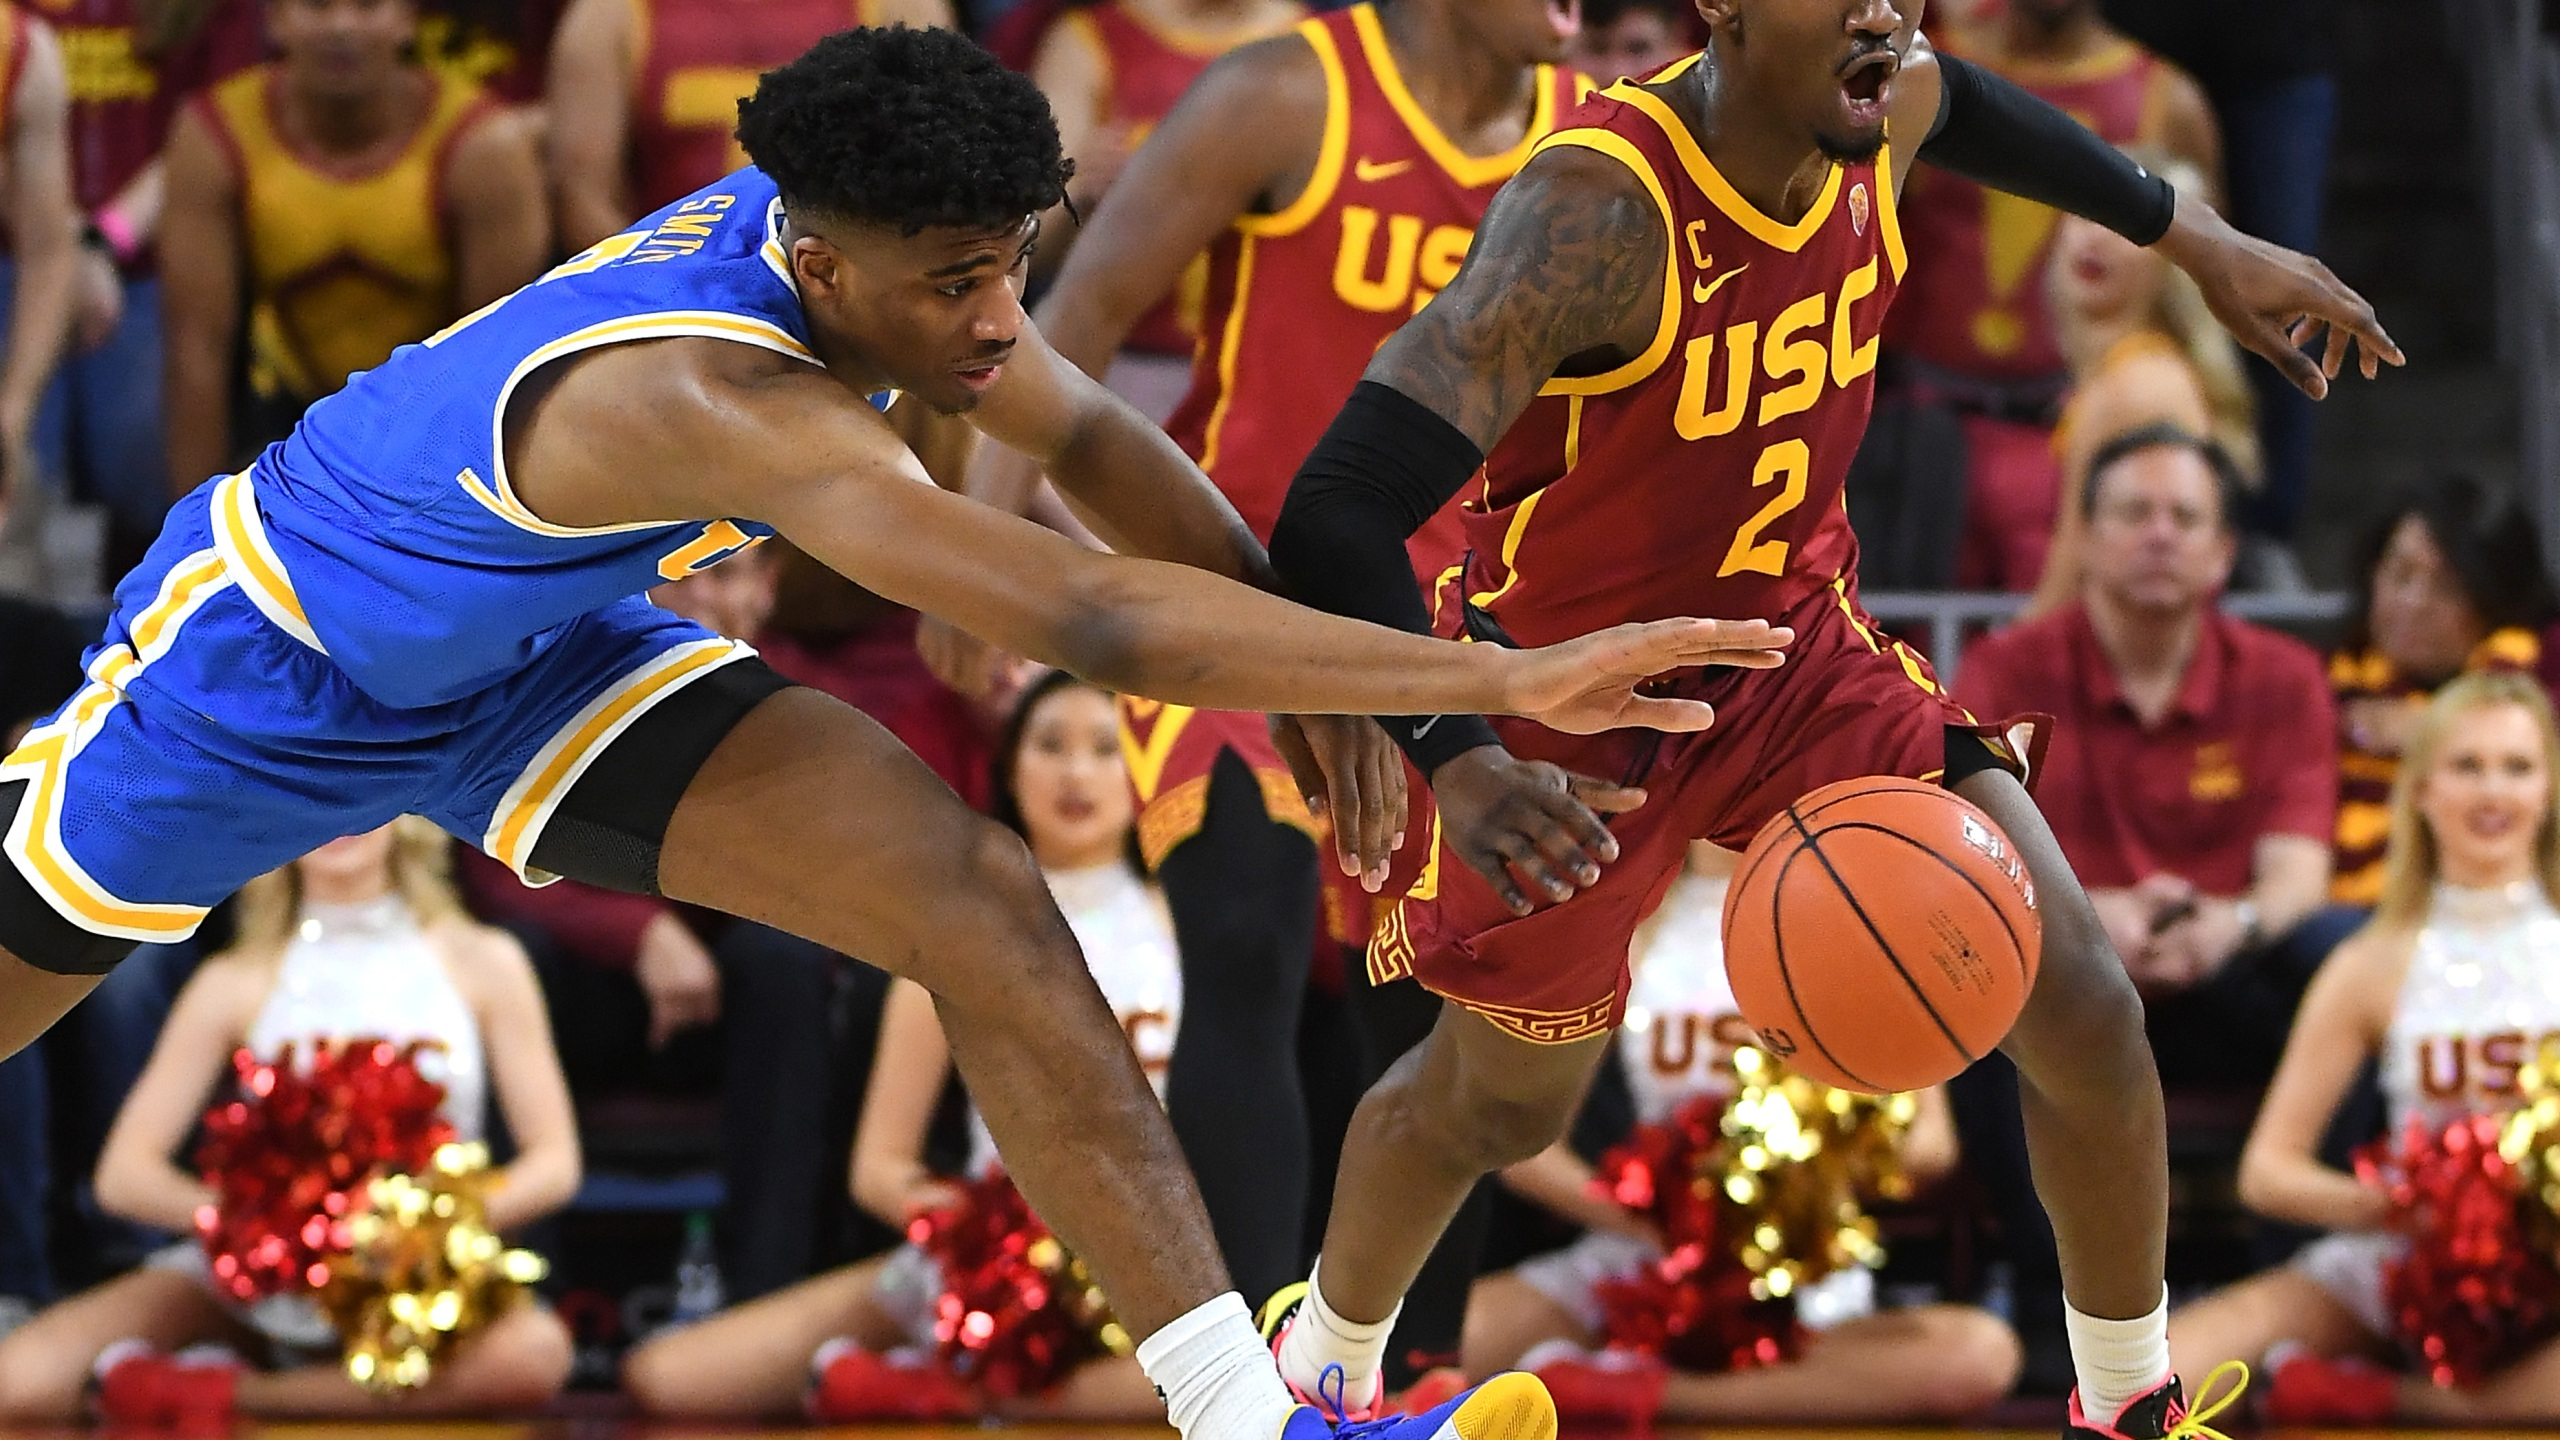 Chris Smith #5 of the UCLA Bruins and Jonah Mathews #2 of the USC Trojans battle for a loose ball in the second half of the game at Galen Center on March 7, 2020 in Los Angeles, California. (Jayne Kamin-Oncea/Getty Images)